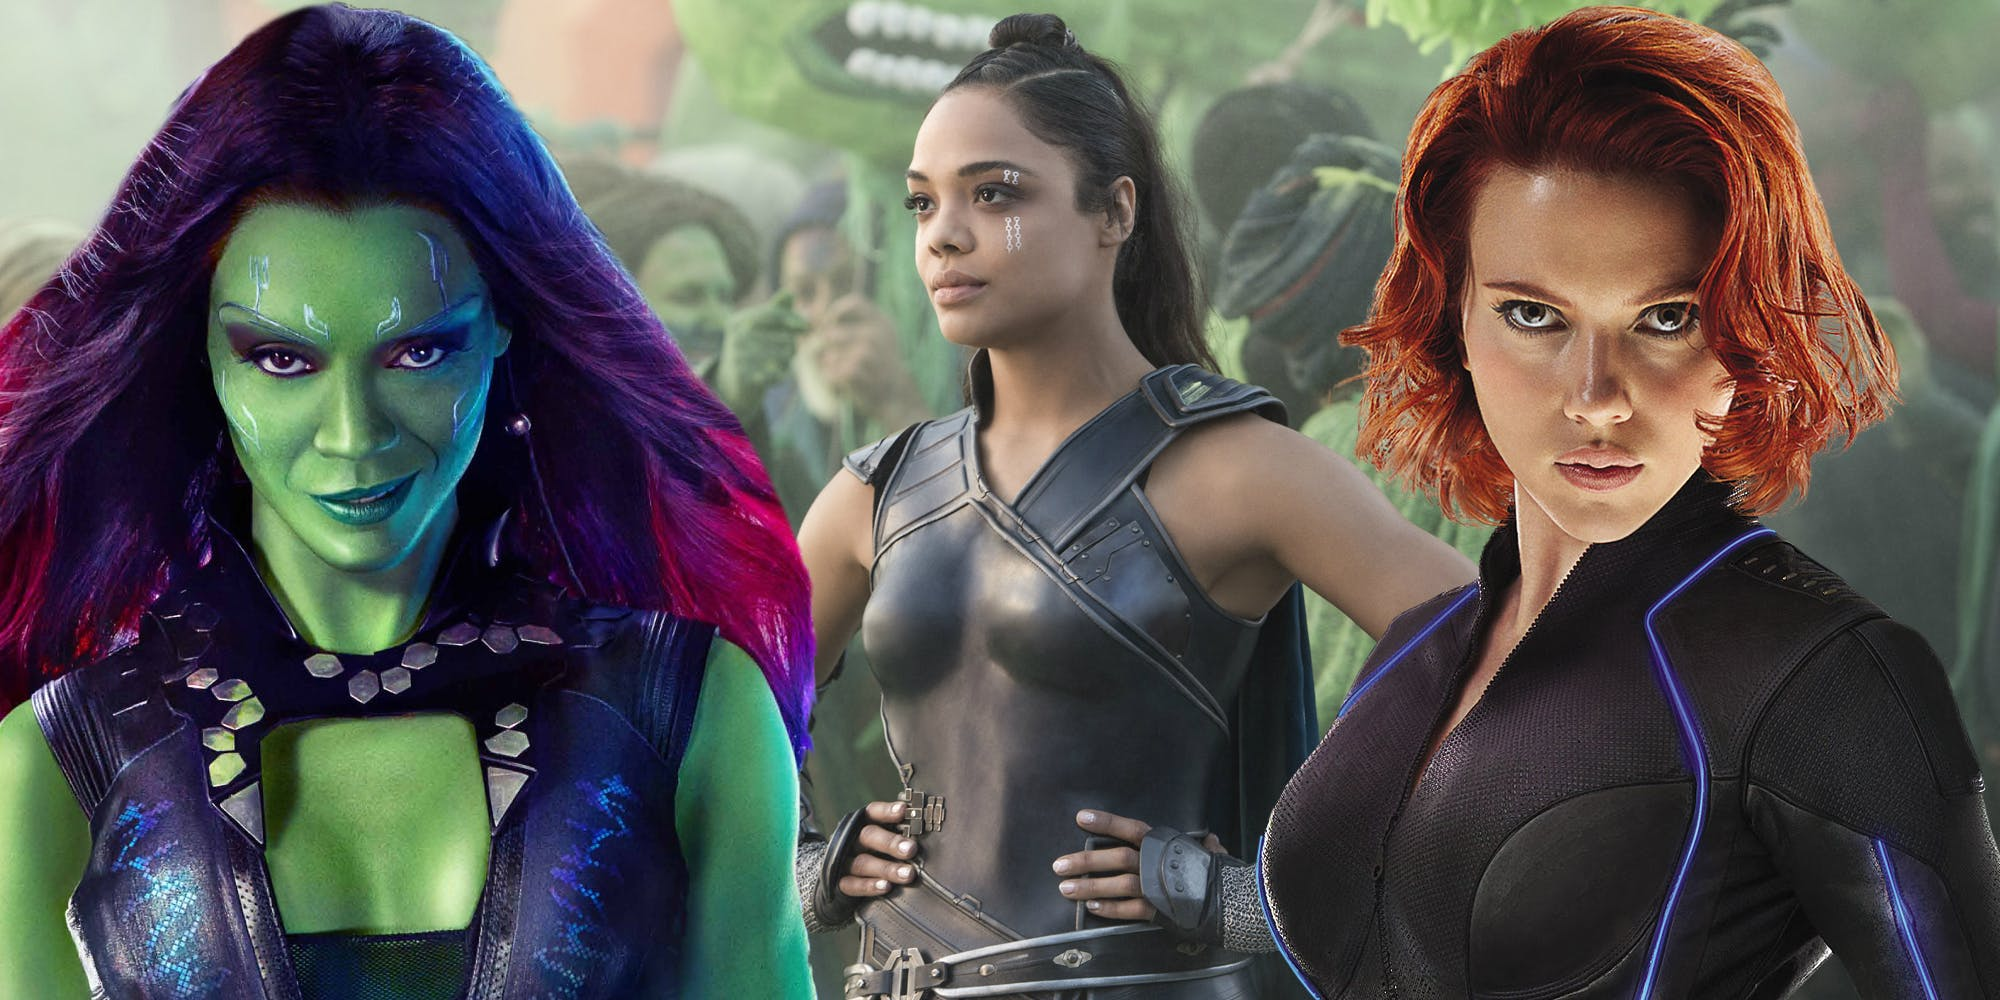 Thor: Ragnarok Star Pitched An All-Female Marvel Movie To Kevin Feige